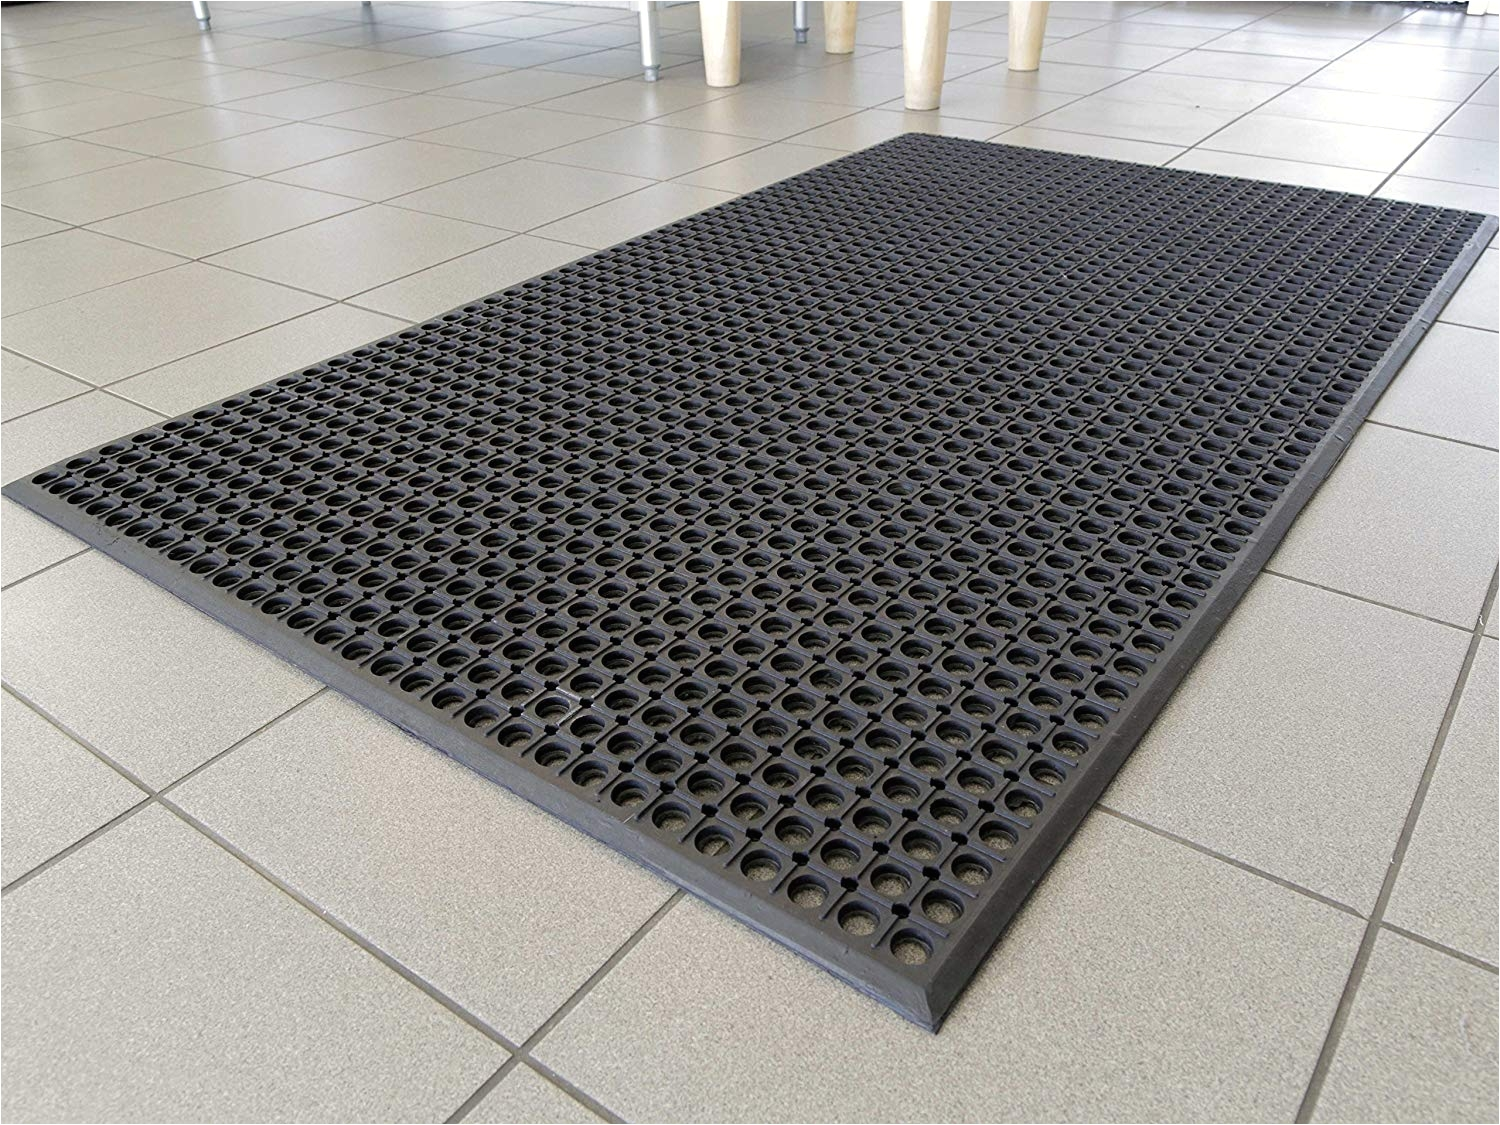 amazon kitchen mat cost to remodel rubbermaid floor mats office com inc professional series 3 x 5